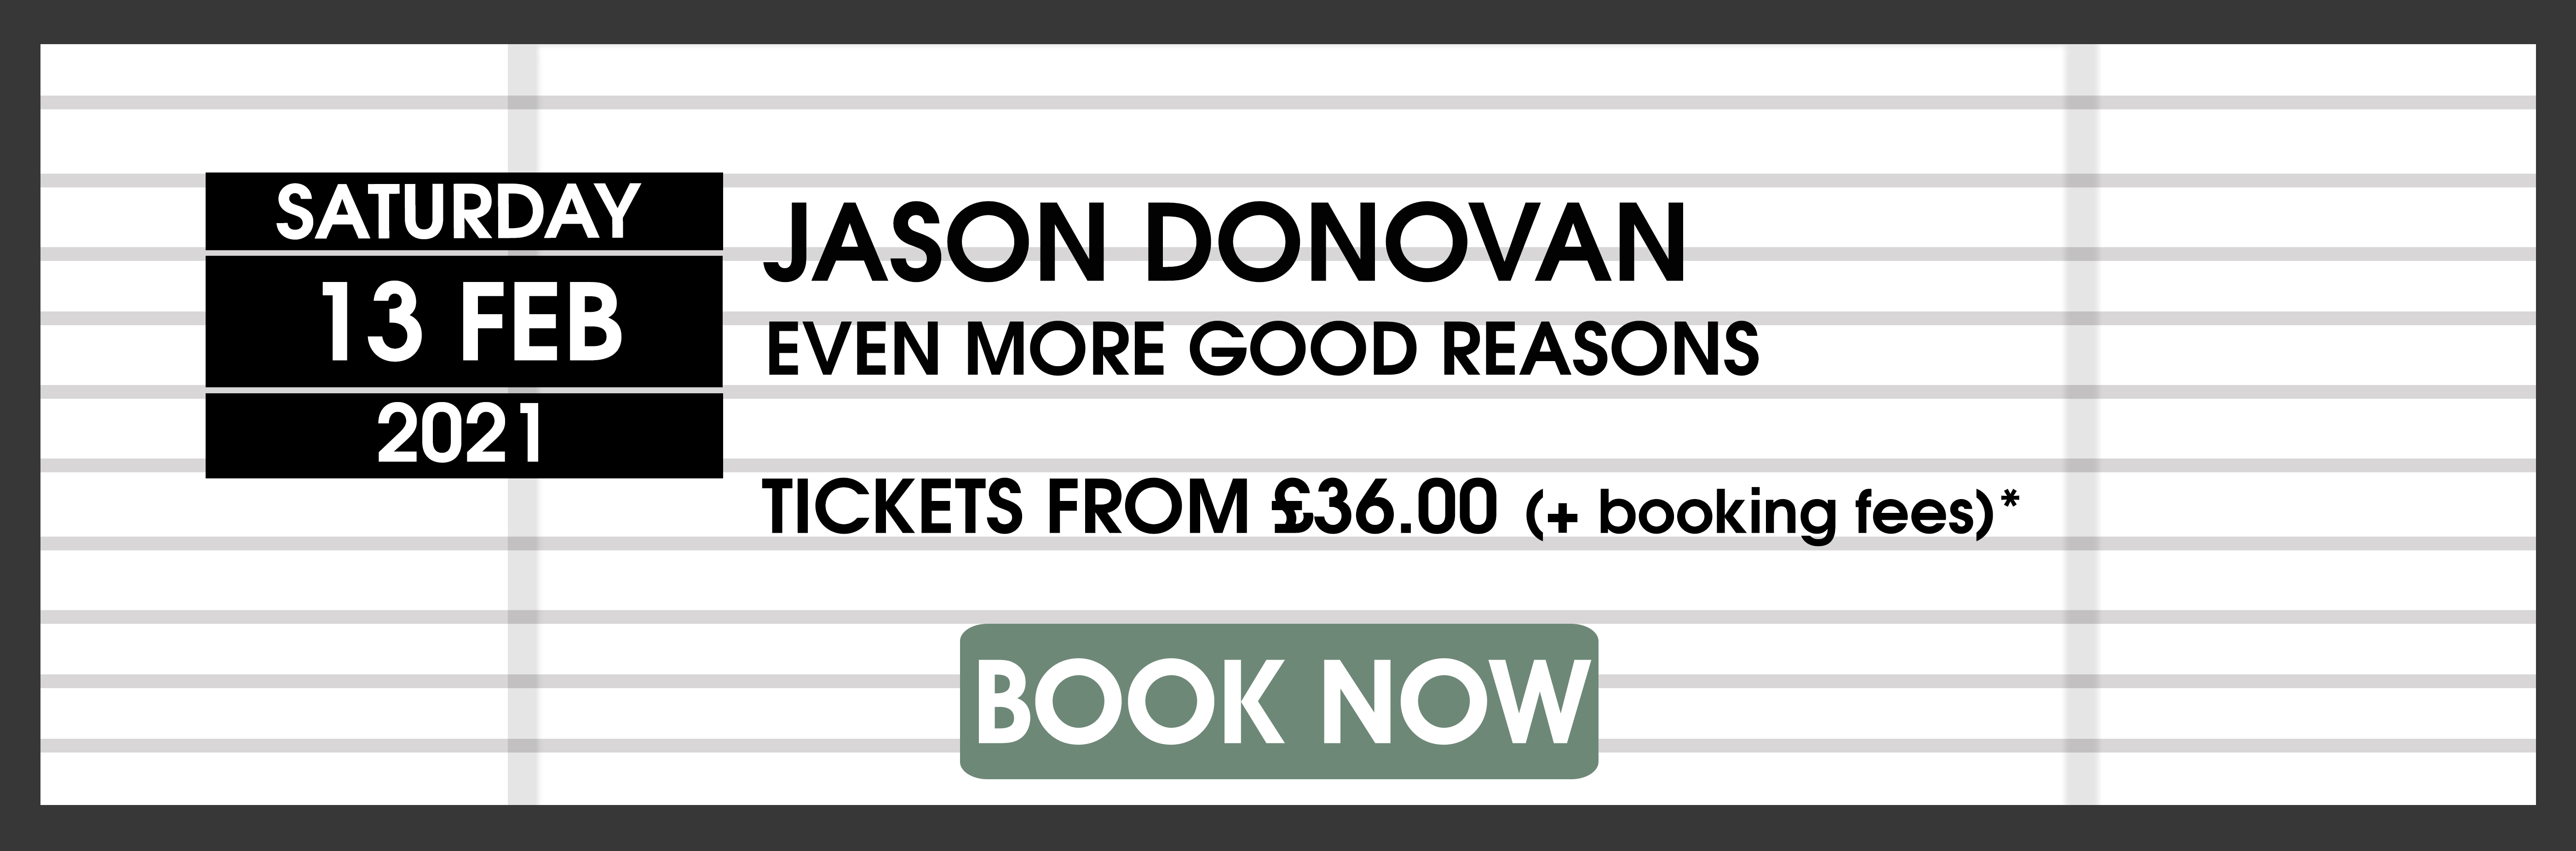 2021-13-02 JD BOOK NOW